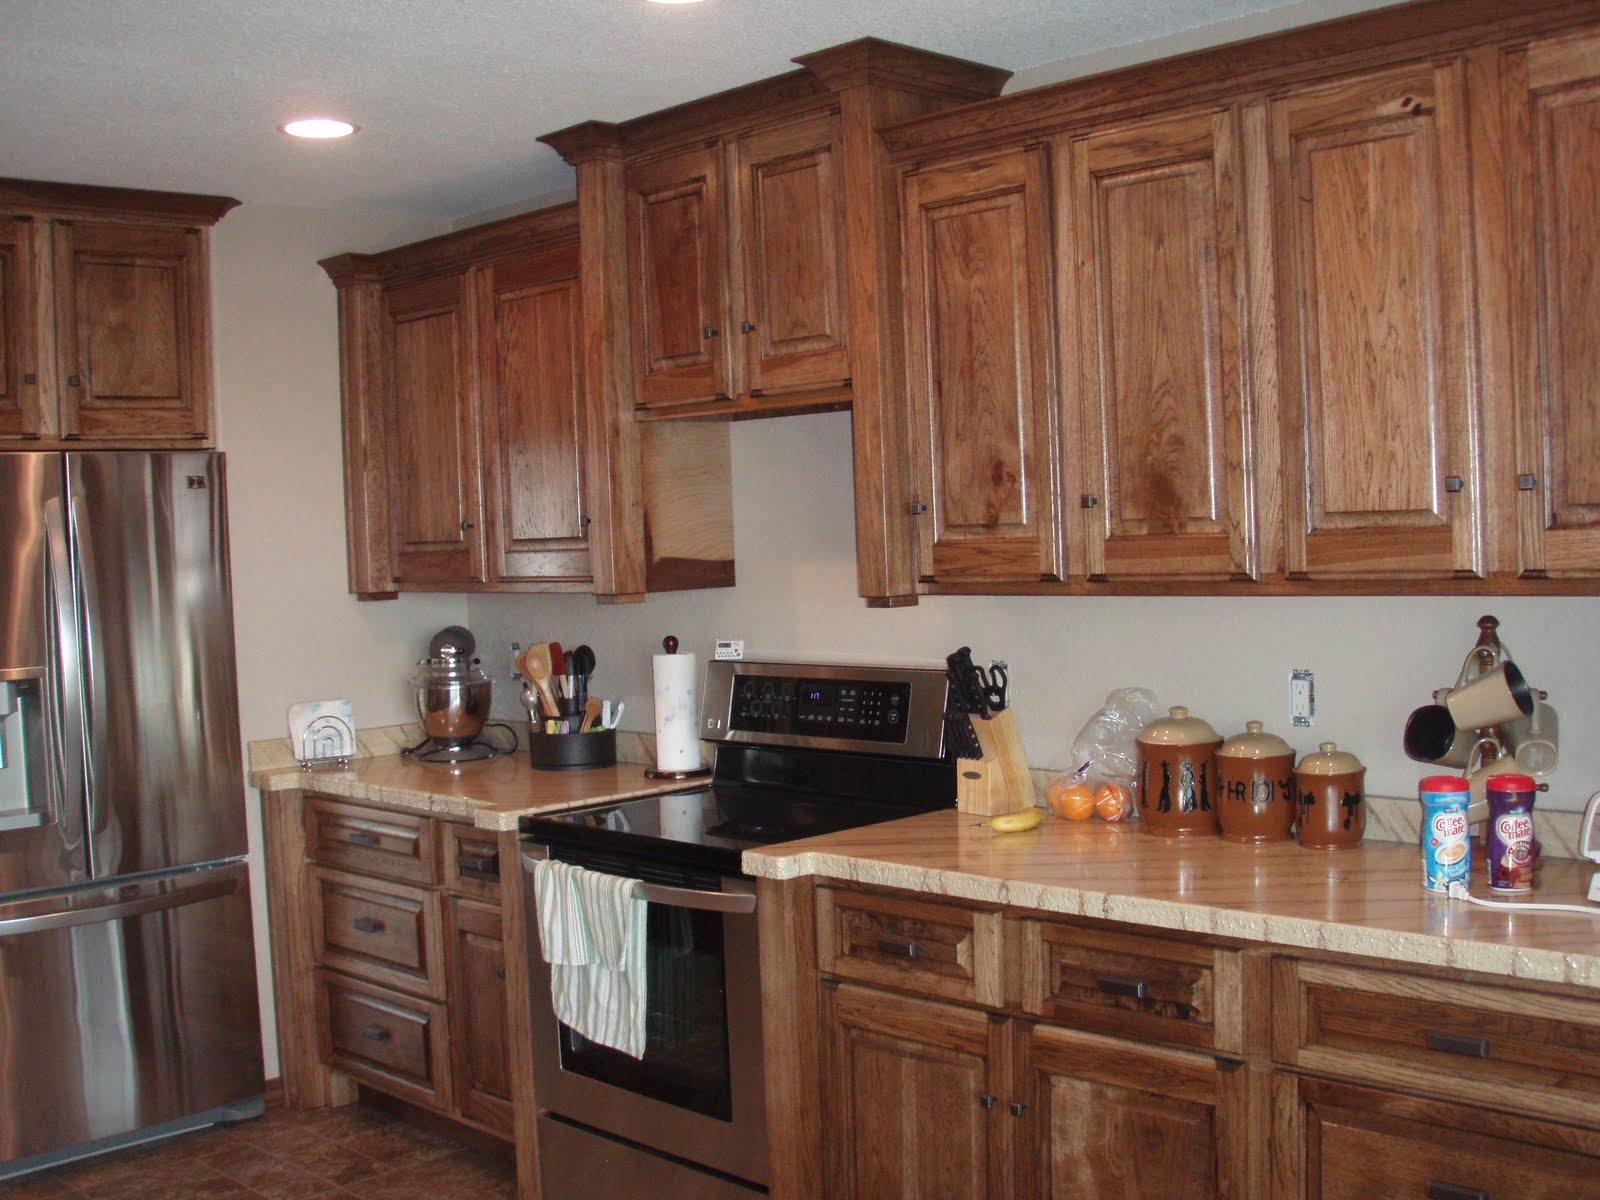 Backer S Woodworking Hickory Cabinets With Granicrete